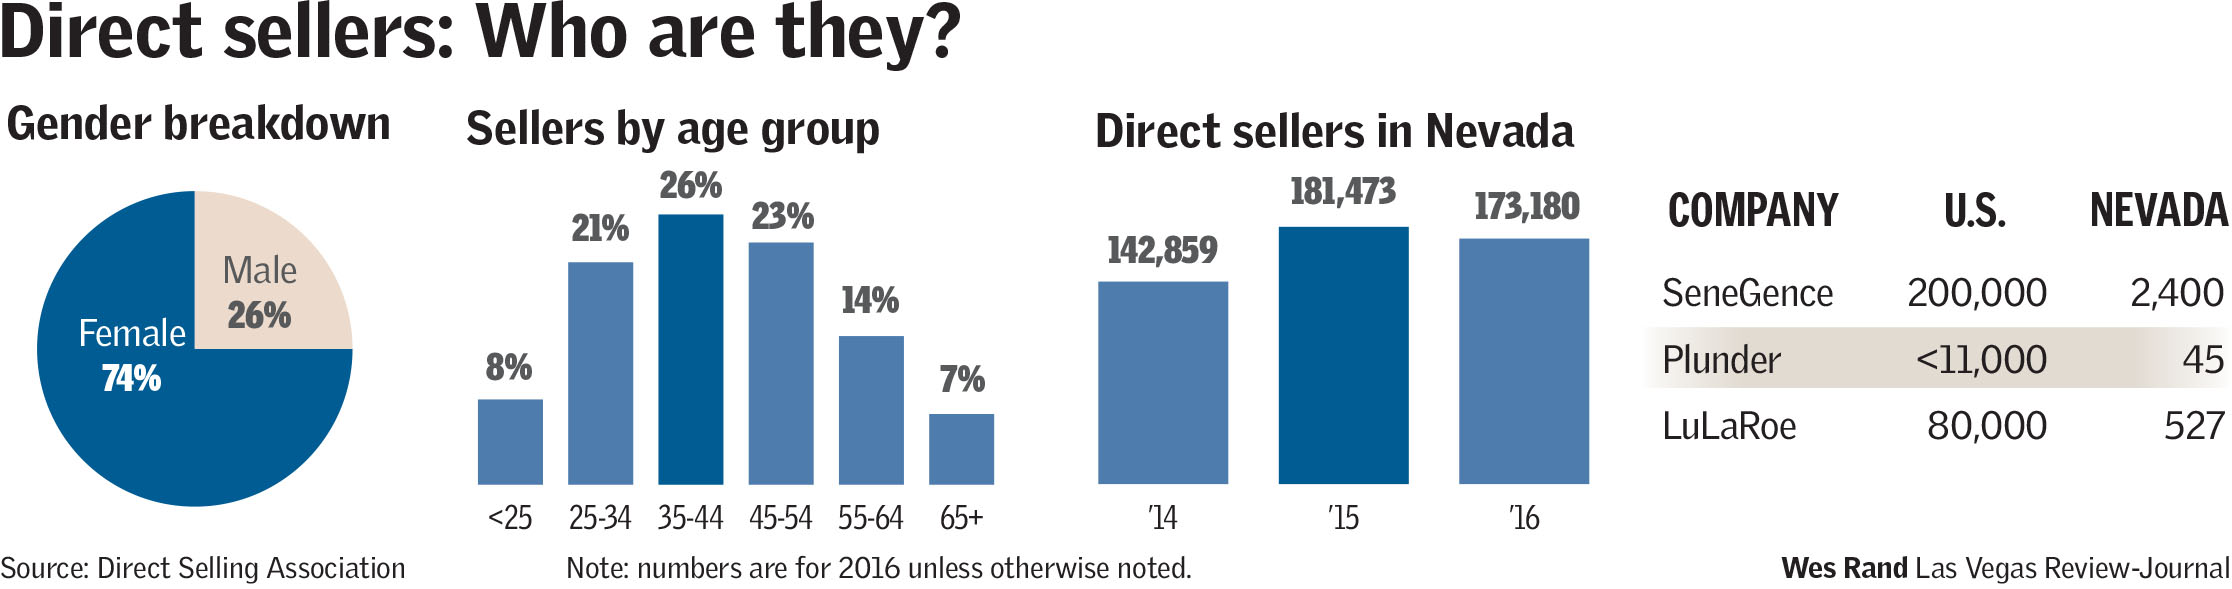 direct sellers graphic breakdown